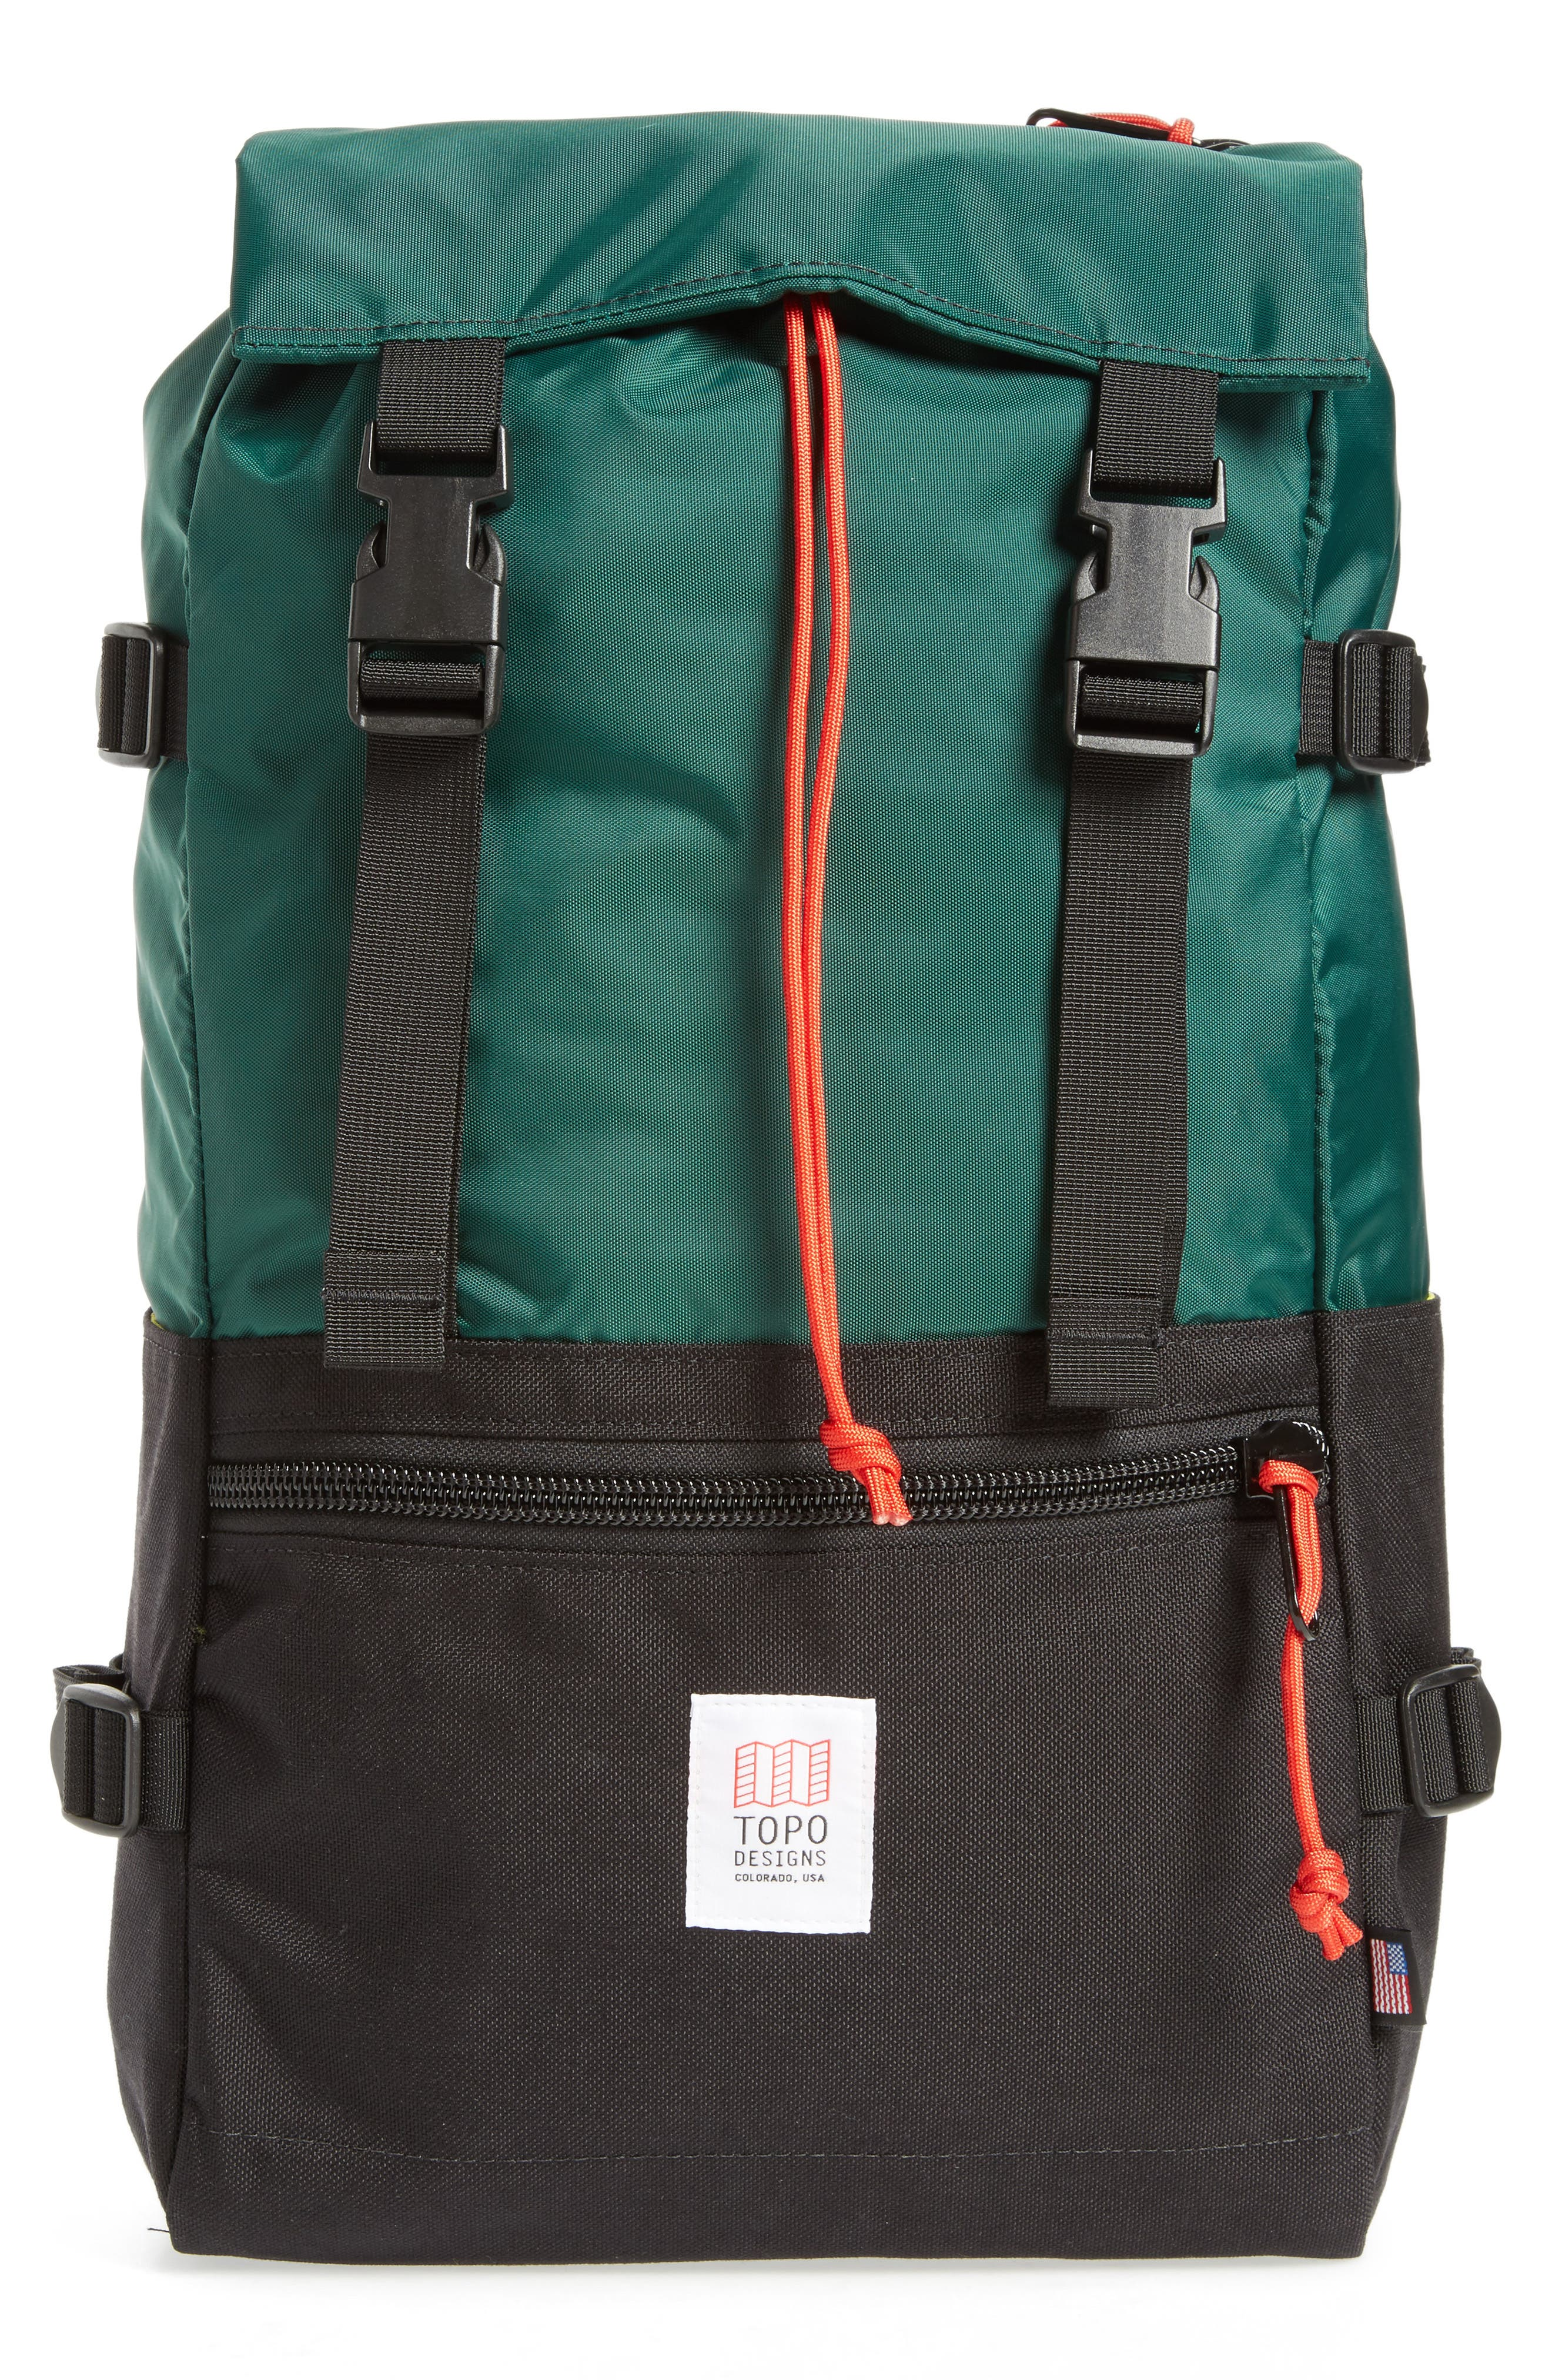 Rover Backpack,                             Main thumbnail 1, color,                             FOREST/ BLACK